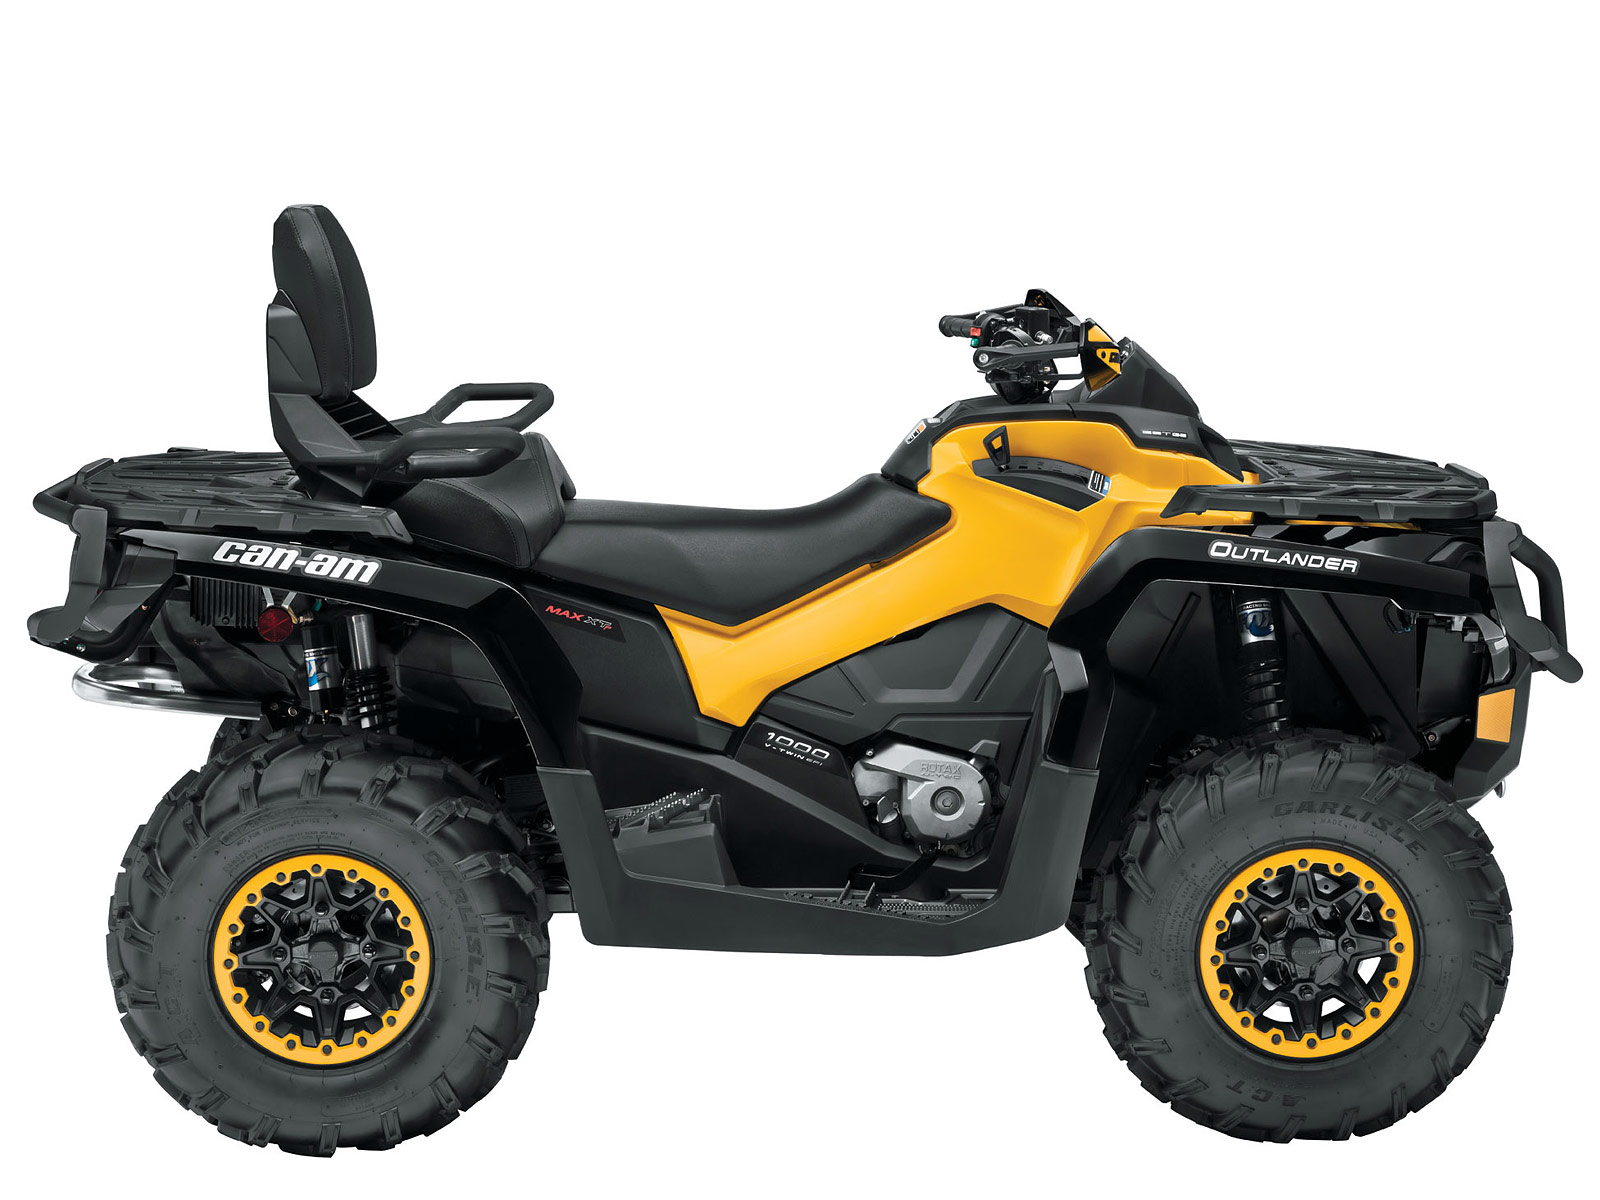 7 14 13 7 21 13 2013 can am outlander max xt p 1000 atv pictures 2